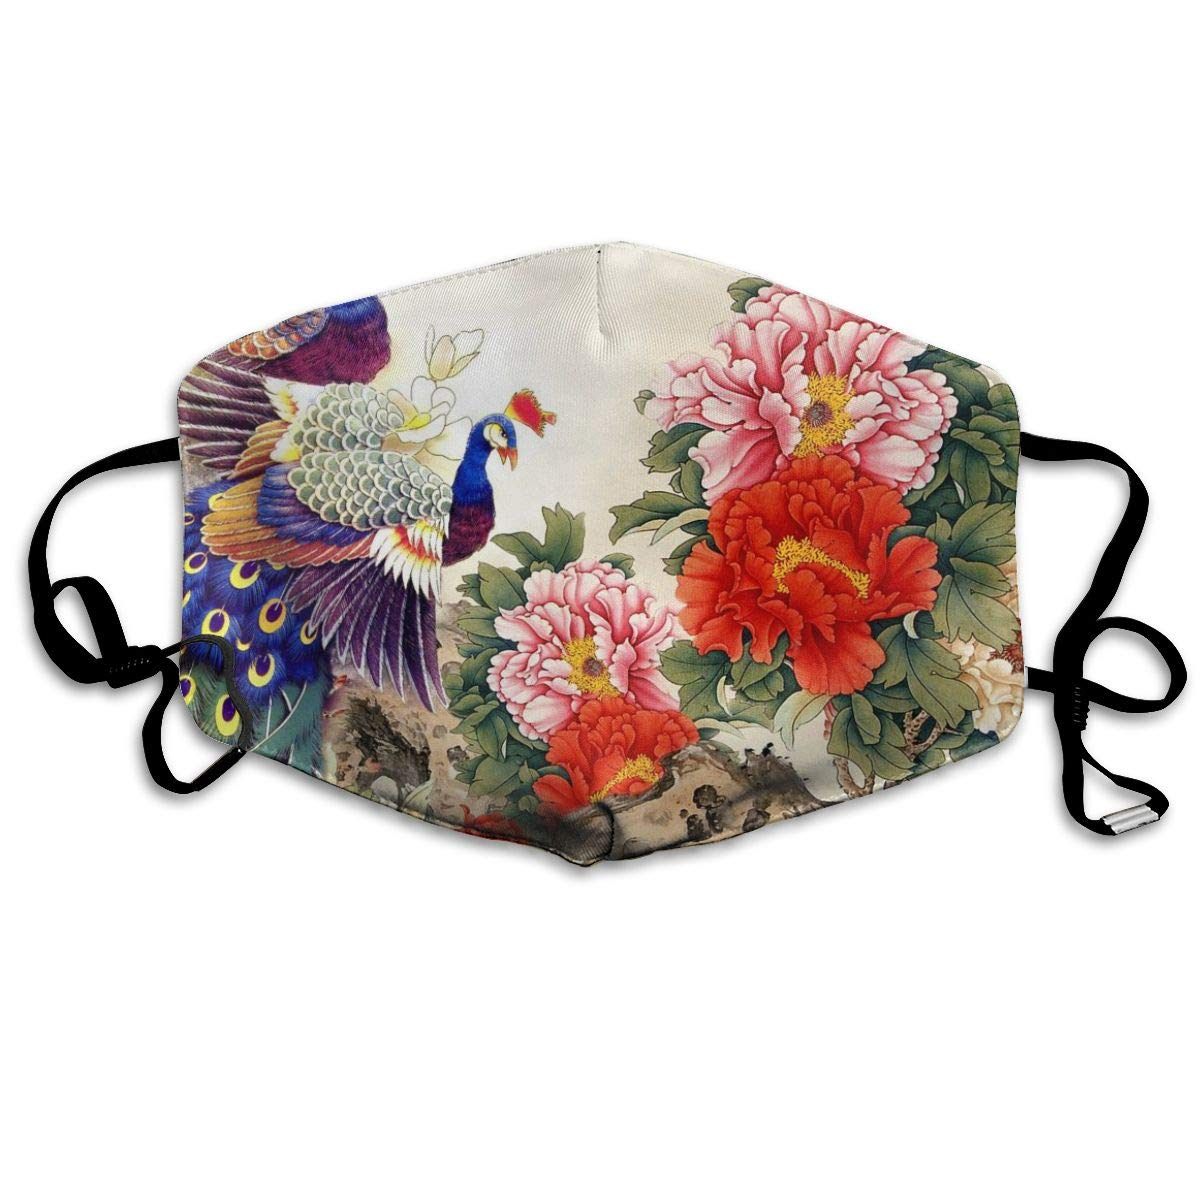 Mouth Mask Peacock Peony Flowers Ink Print Masks - Breathable Adjustable Windproof Mouth-Muffle, Camping Running For Women And